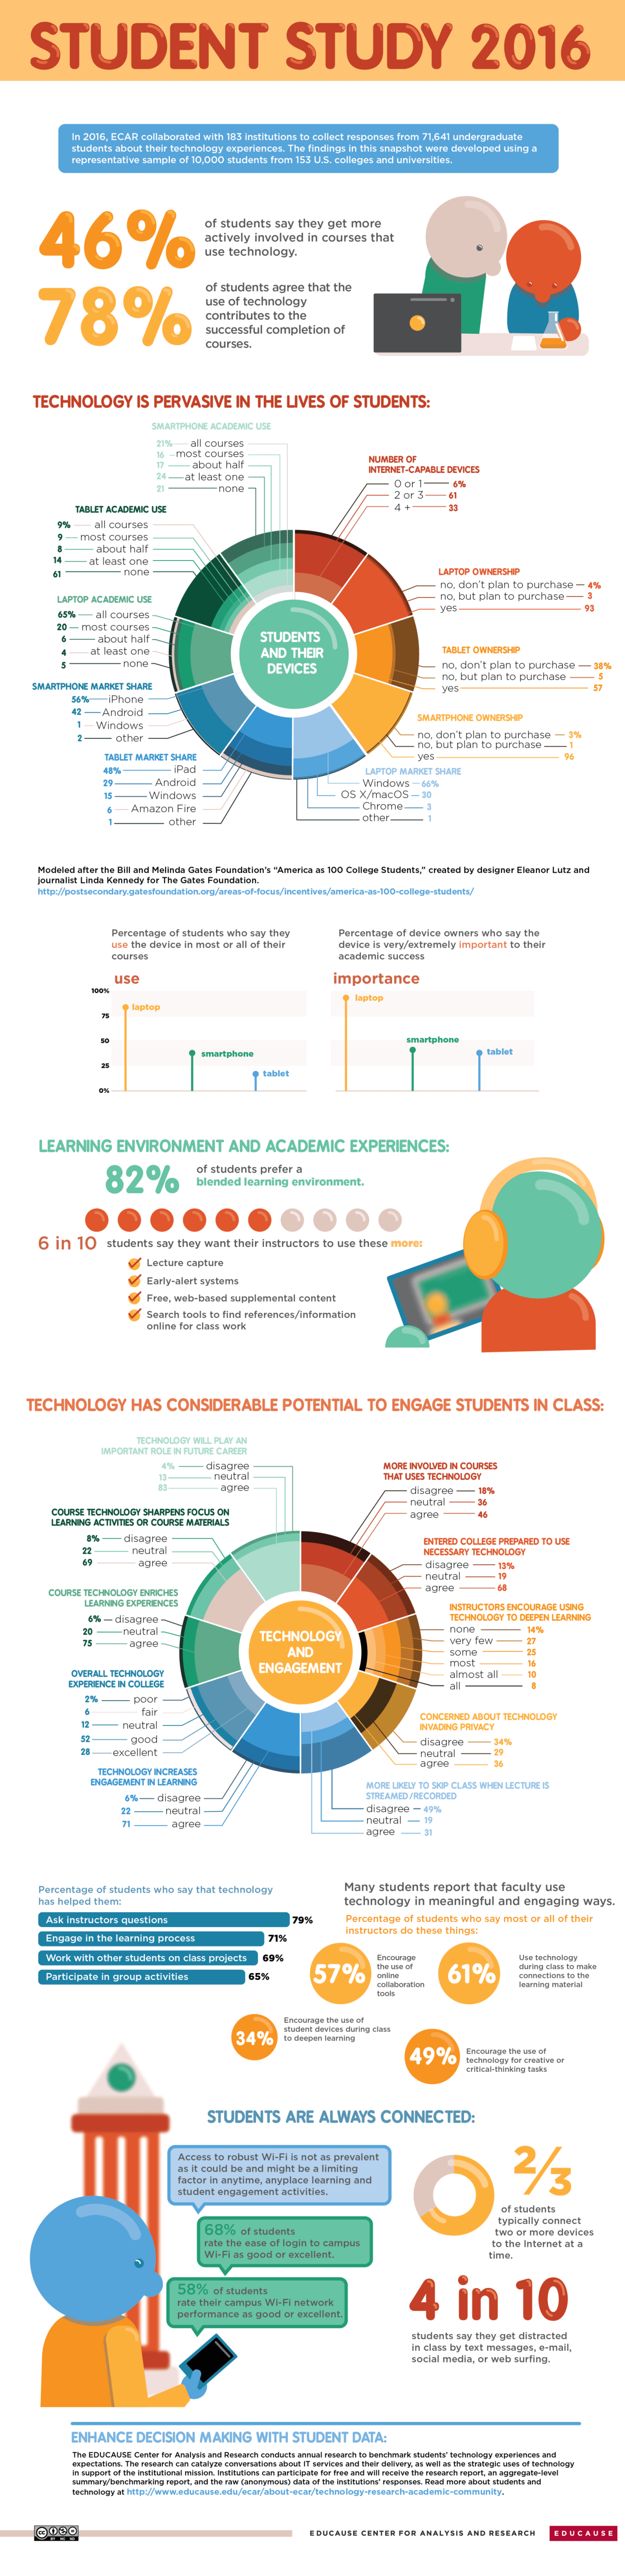 2016 Student and Technology Research Study Infographic